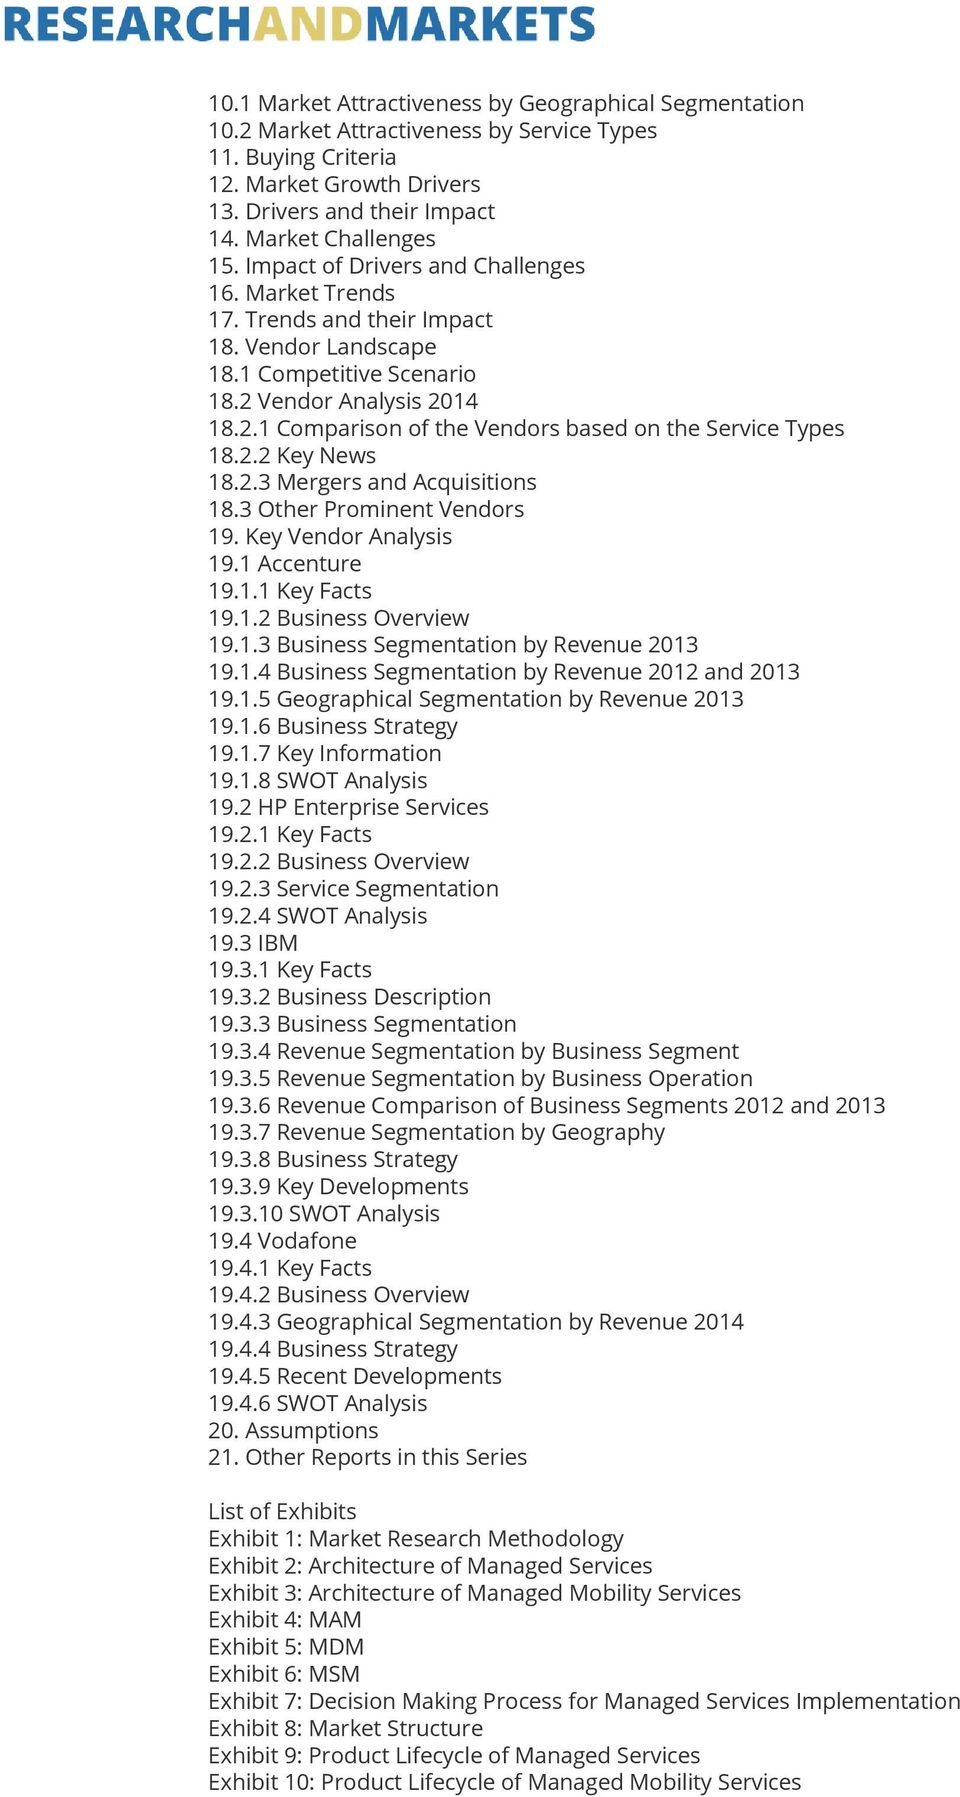 2.2 Key News 18.2.3 Mergers and Acquisitions 18.3 Other Prominent Vendors 19. Key Vendor Analysis 19.1 Accenture 19.1.1 Key Facts 19.1.2 Business Overview 19.1.3 Business Segmentation by Revenue 2013 19.